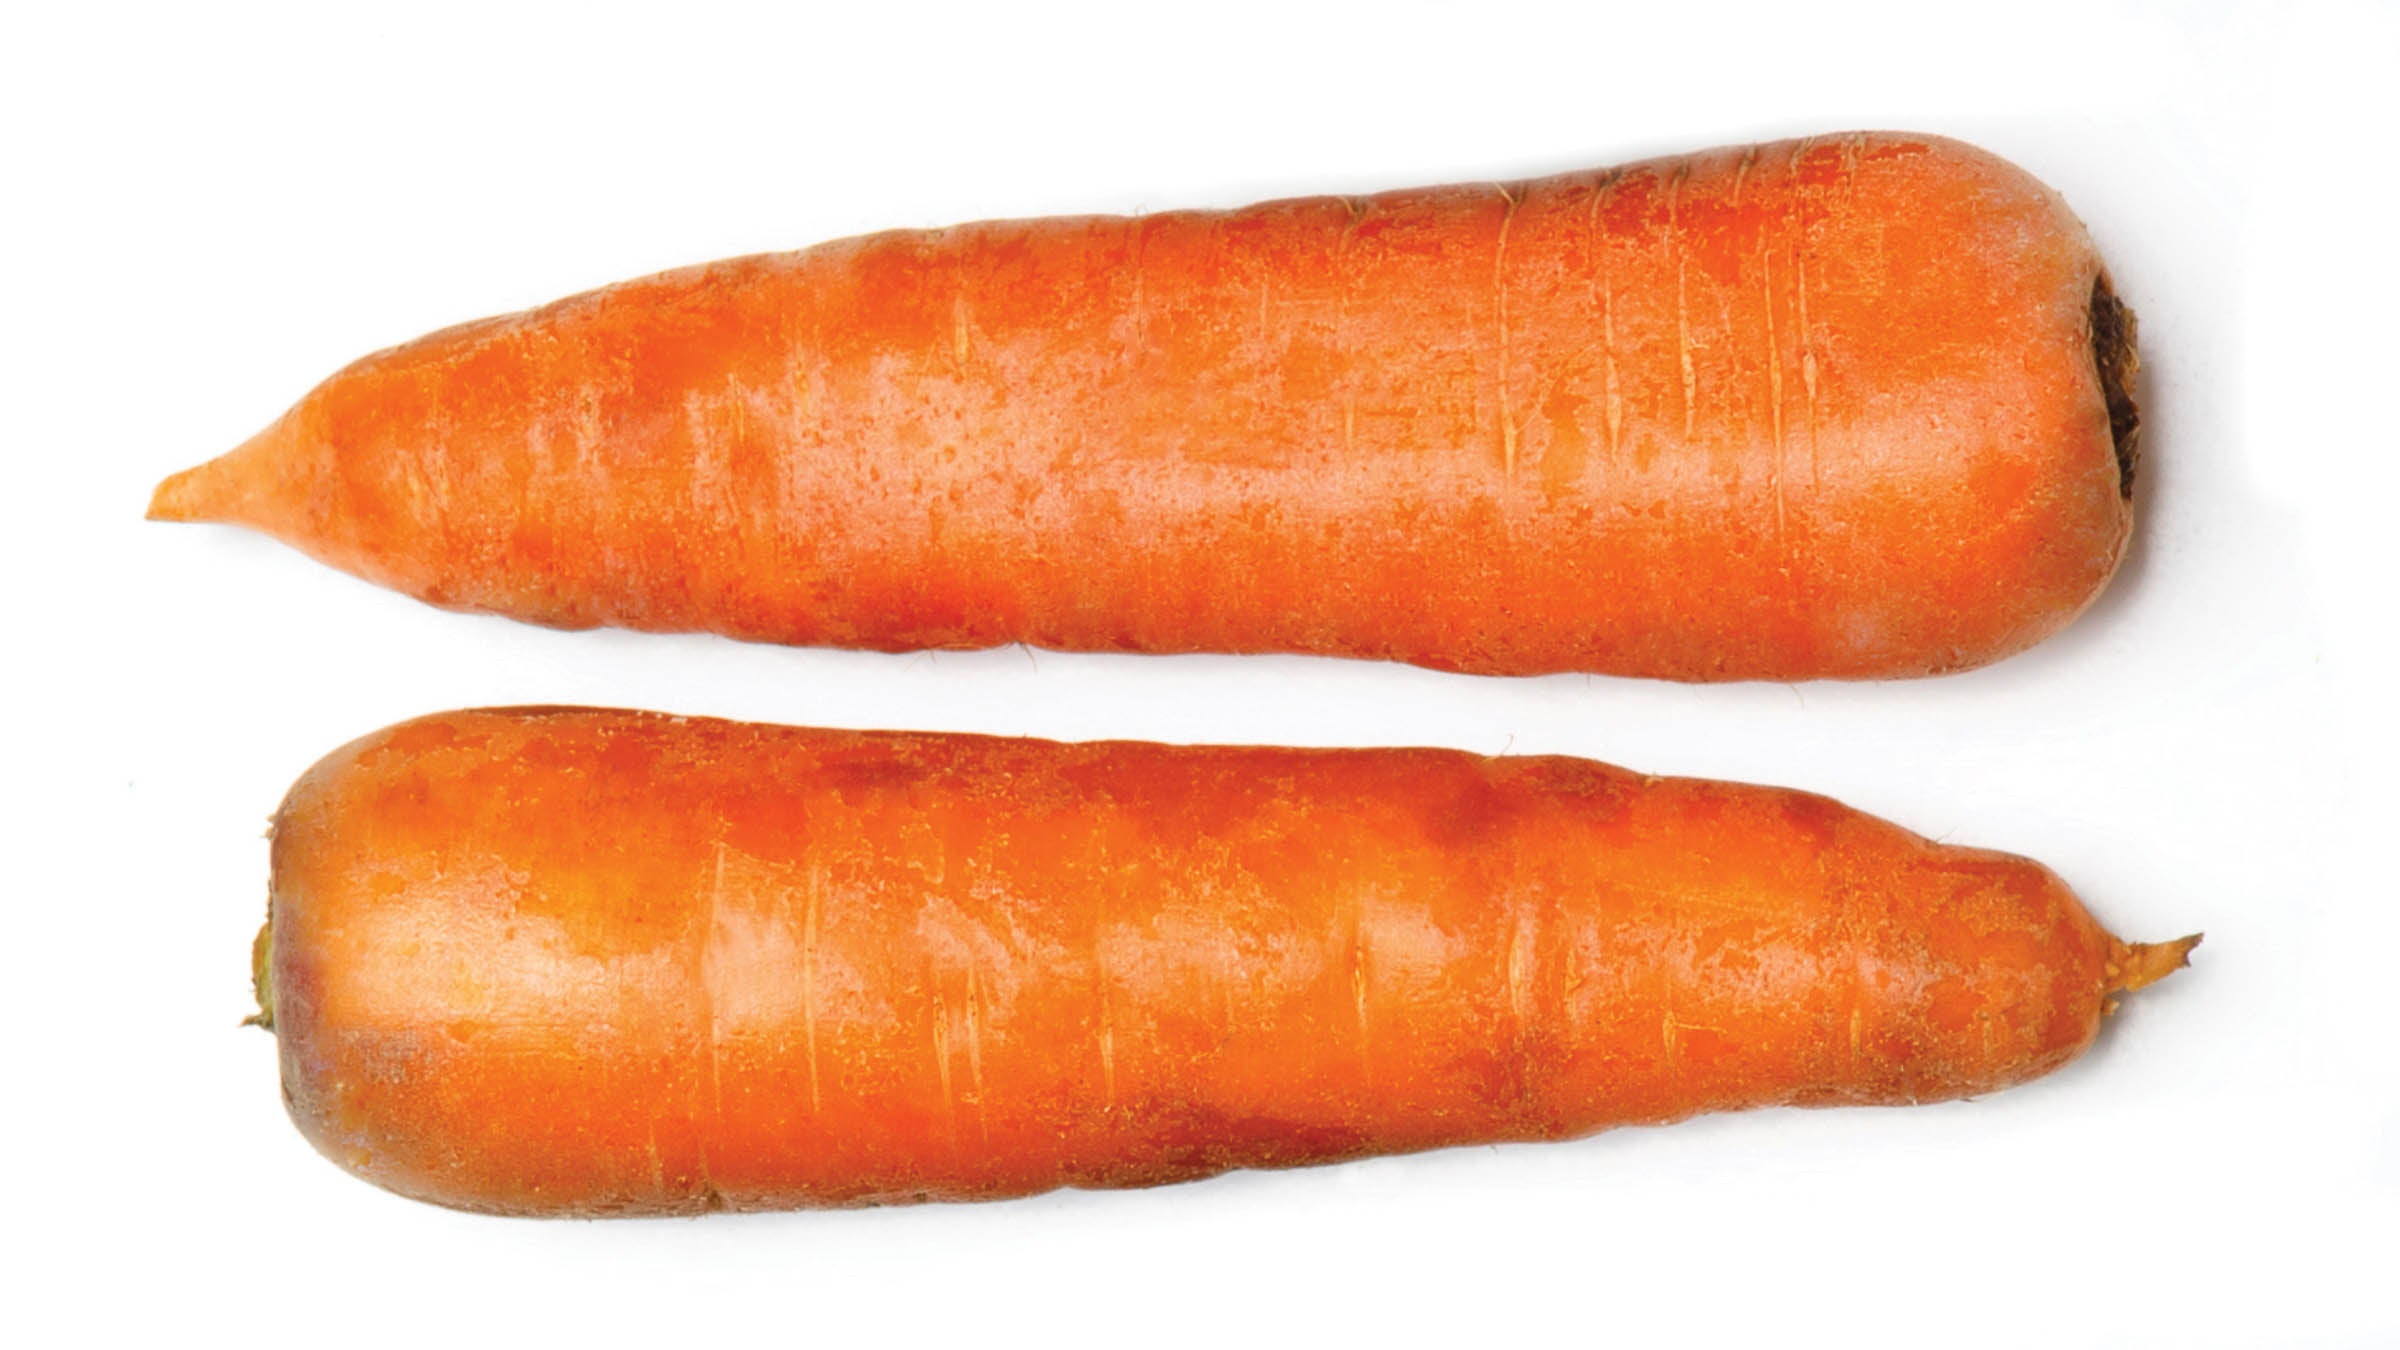 Two carrots on white background